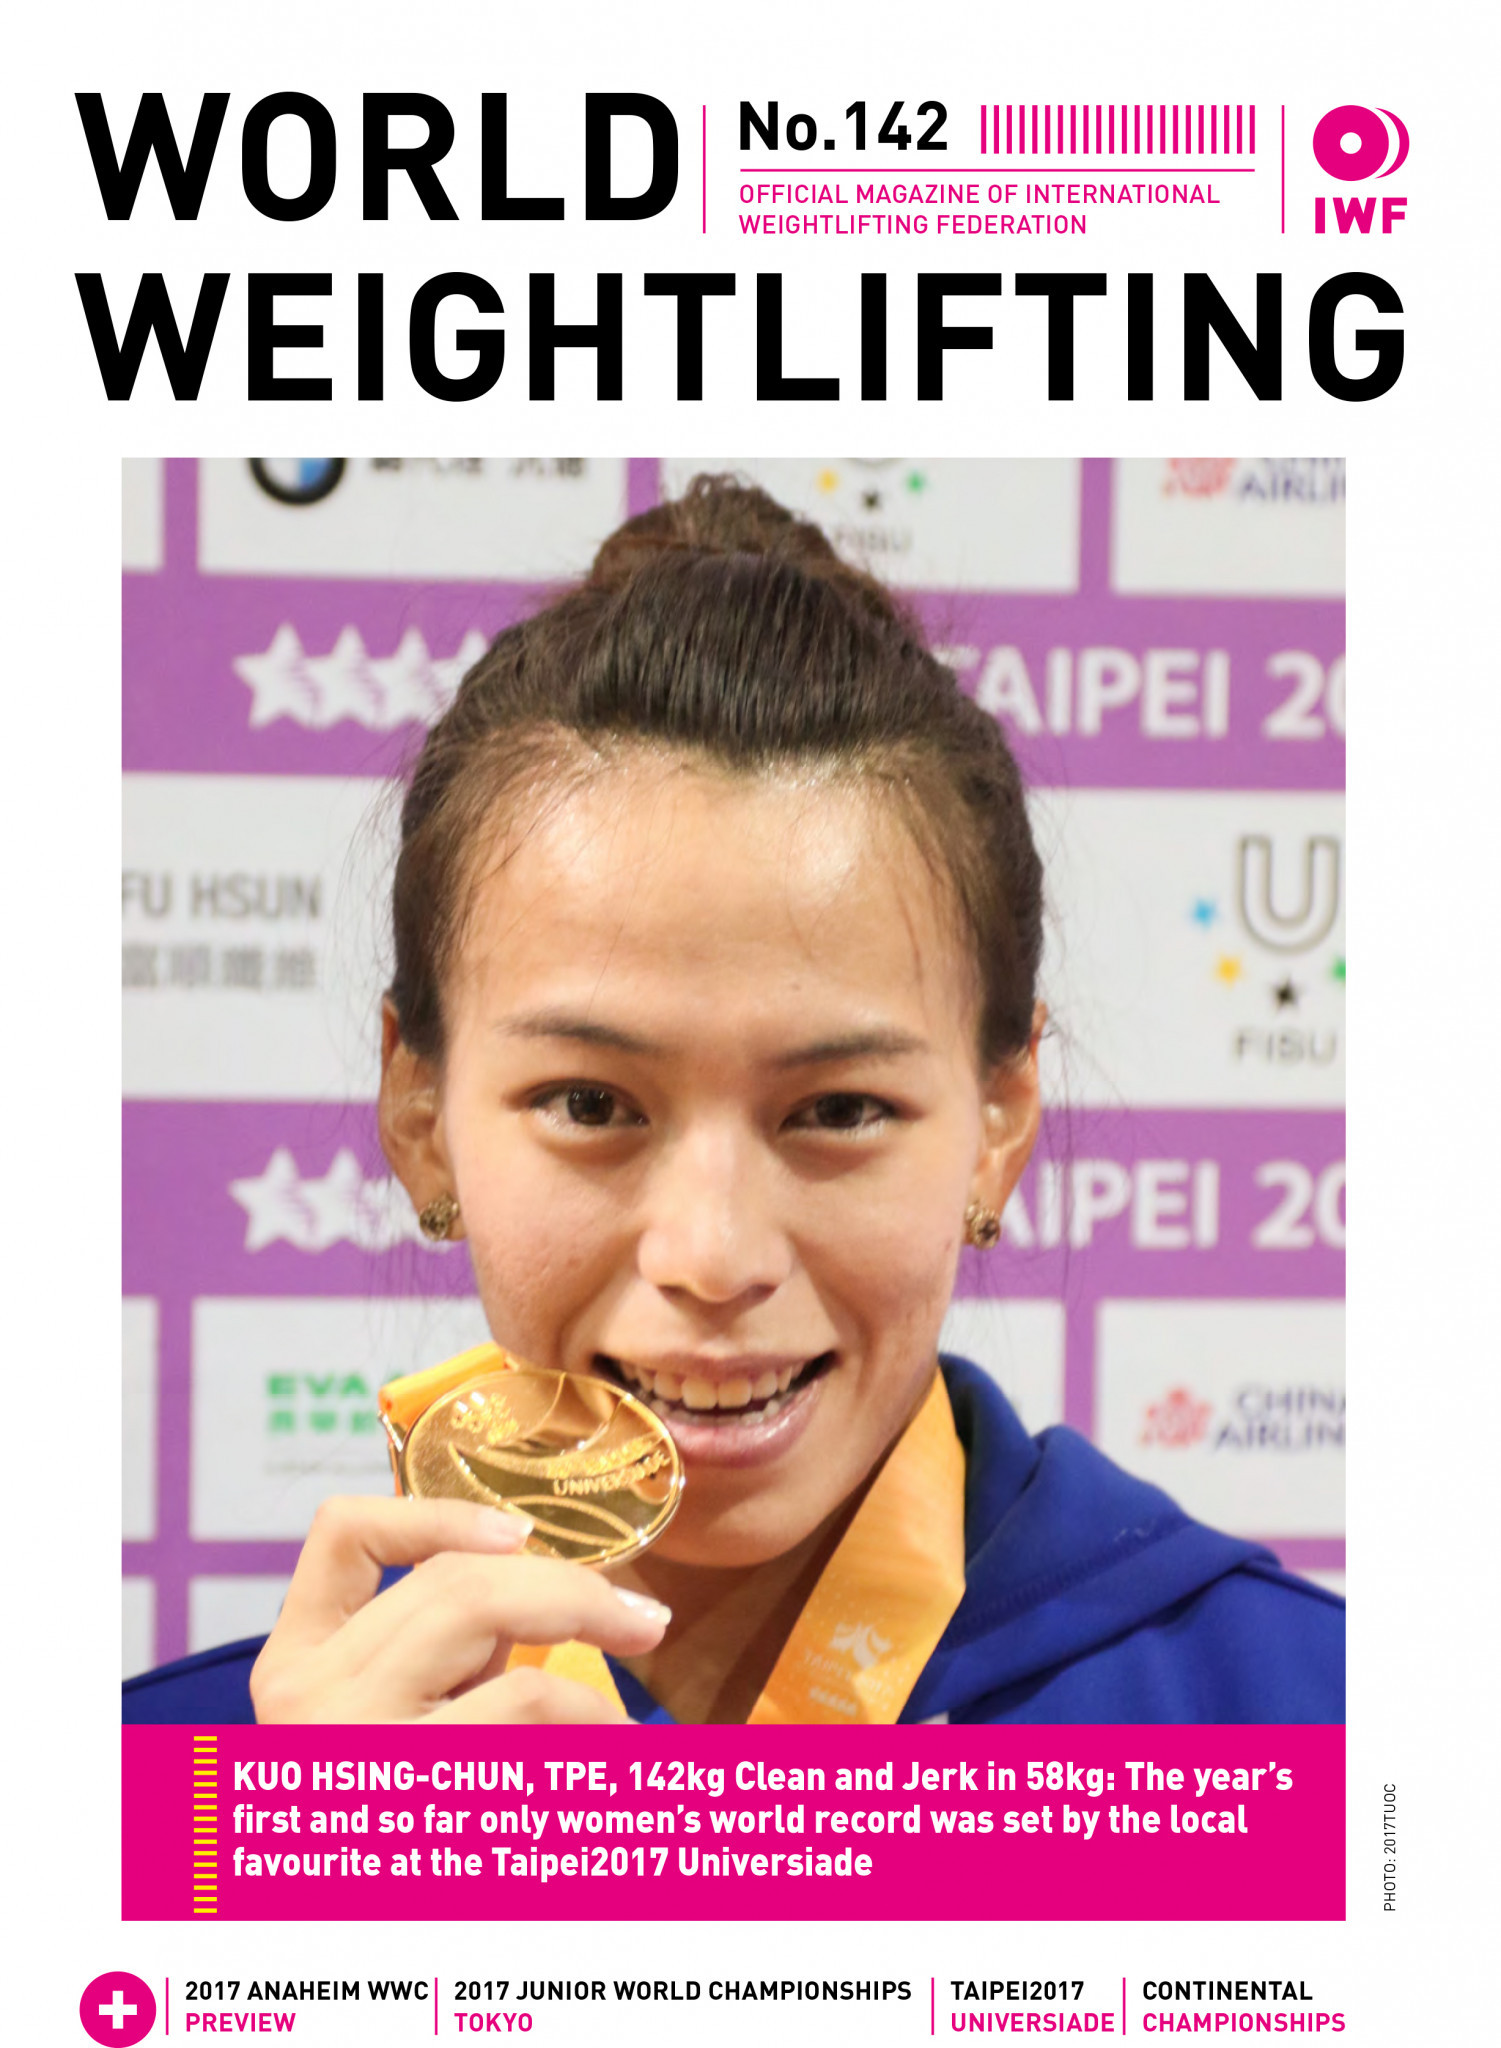 World Weightlifting Magazine No. 142